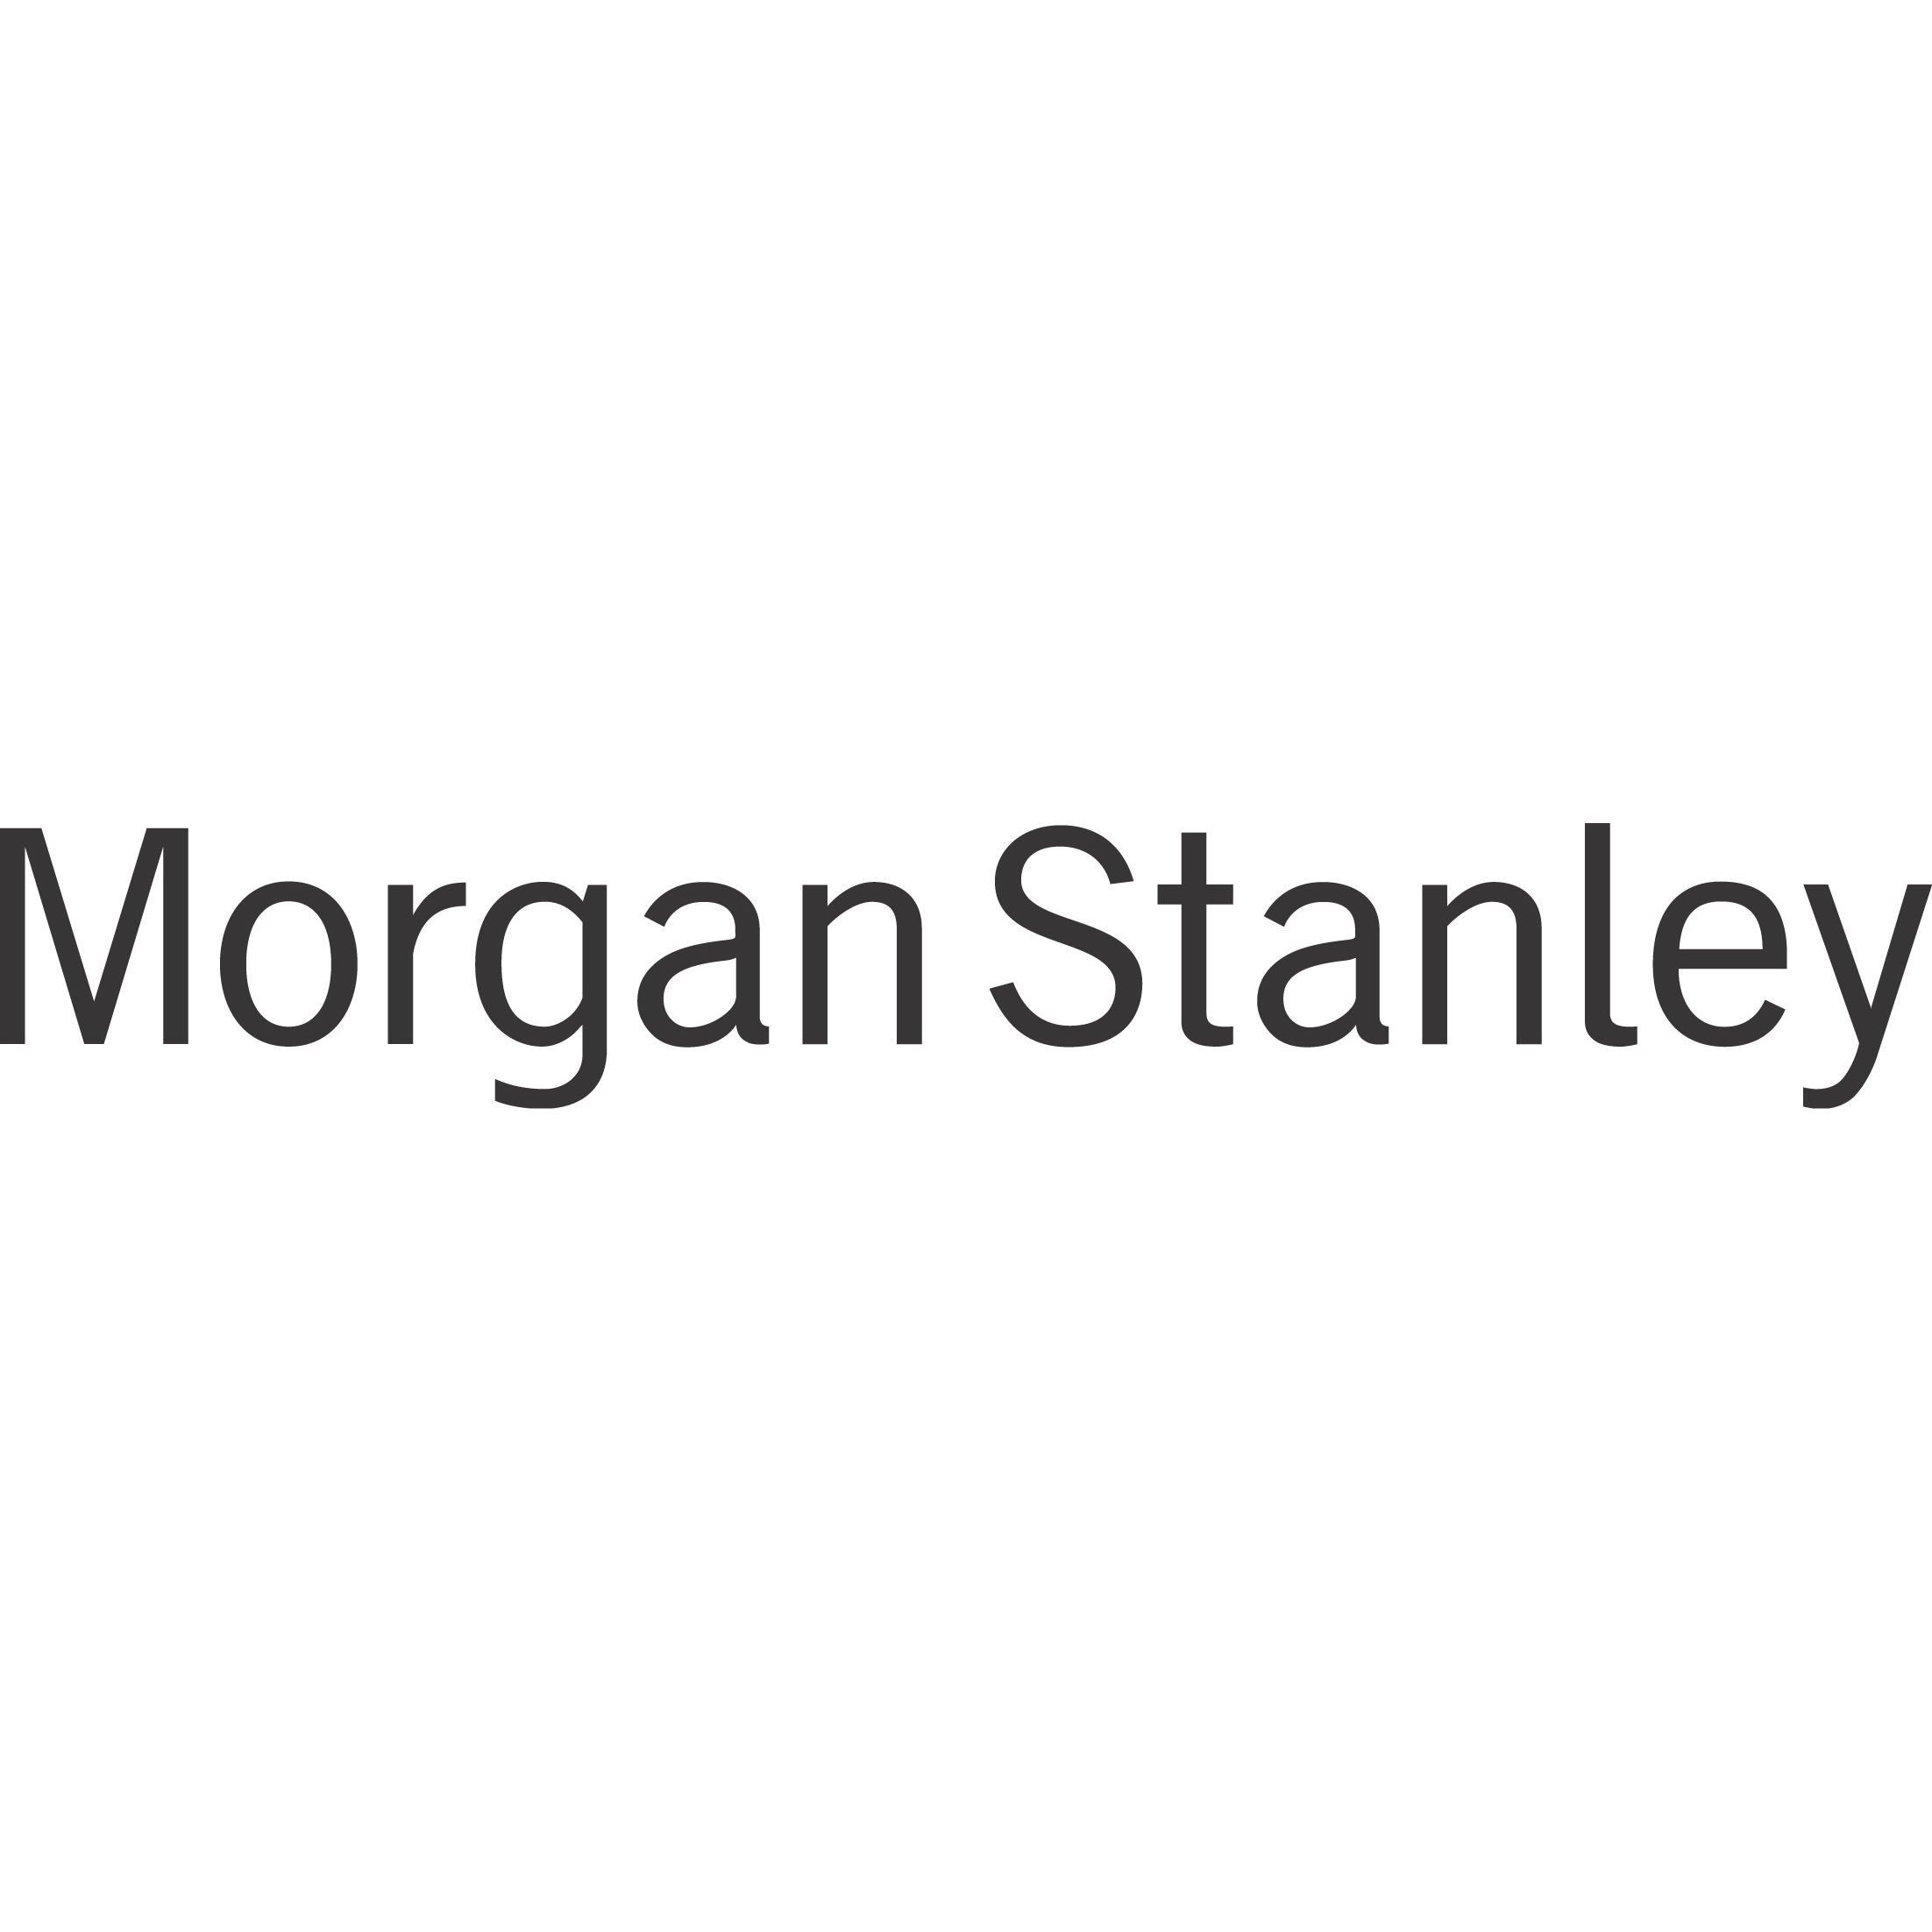 Jennifer A Lucke - Morgan Stanley | Financial Advisor in Spokane,Washington